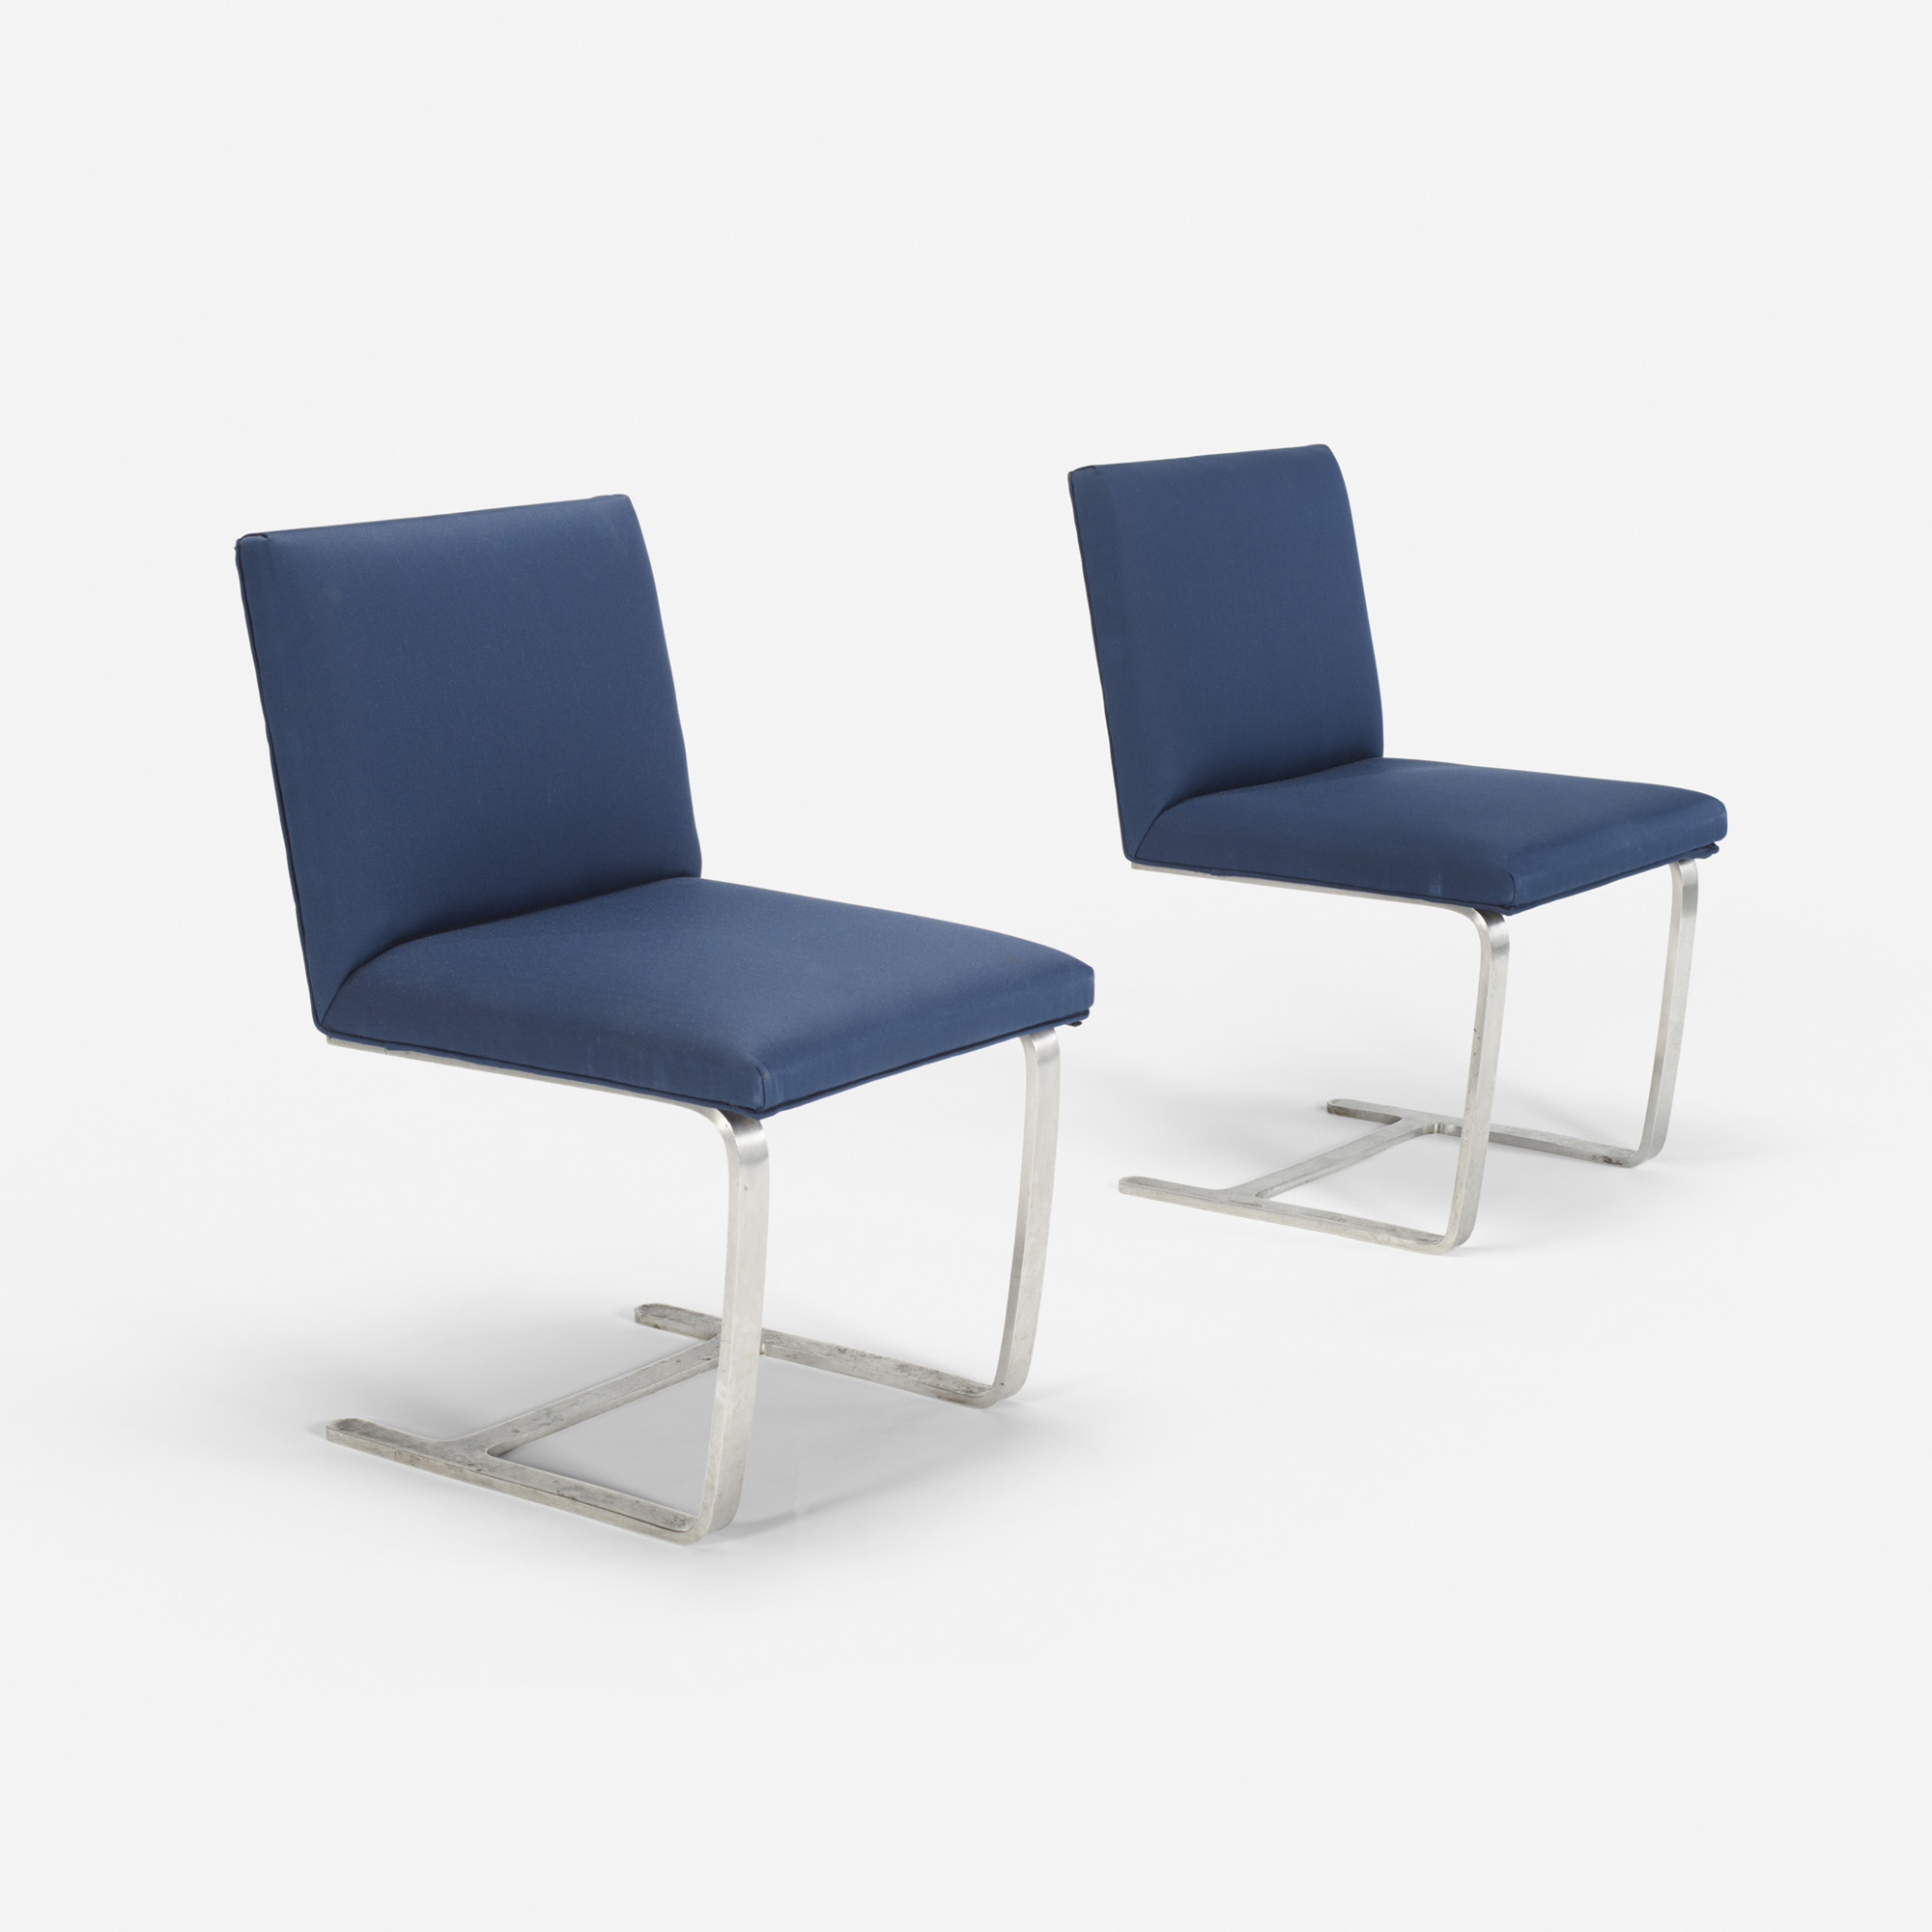 216 Ludwig Mies van der Rohe Custom Brno side chairs from The